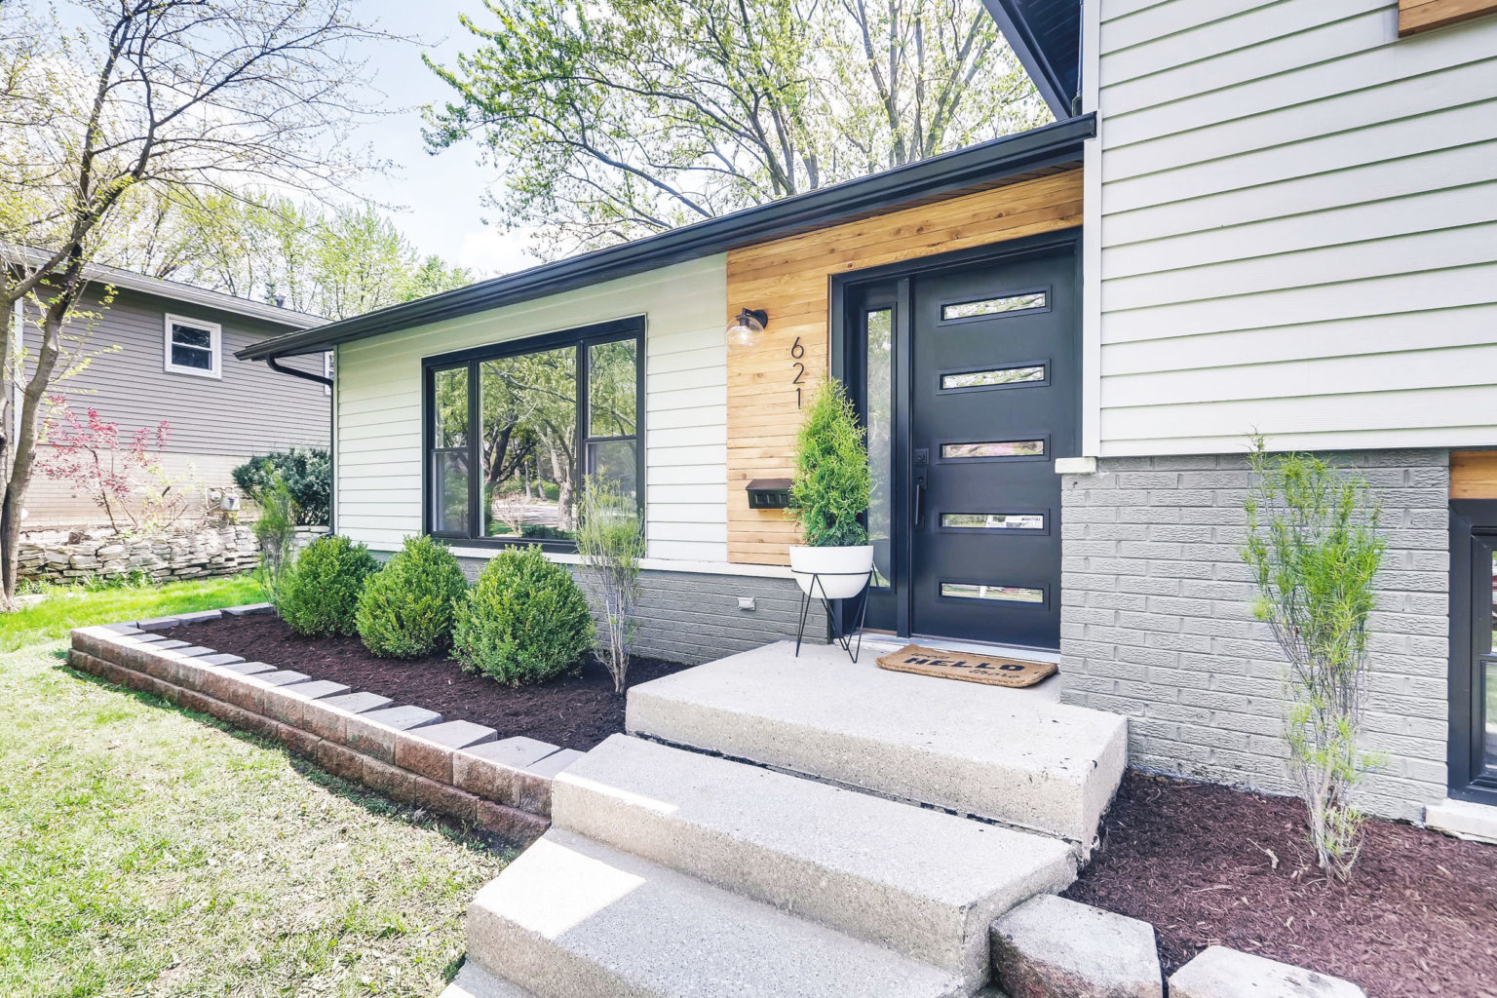 621+67th+st+downers+grove+il Print 003 3 Exterior+front+entry 3600x2399 300dpi